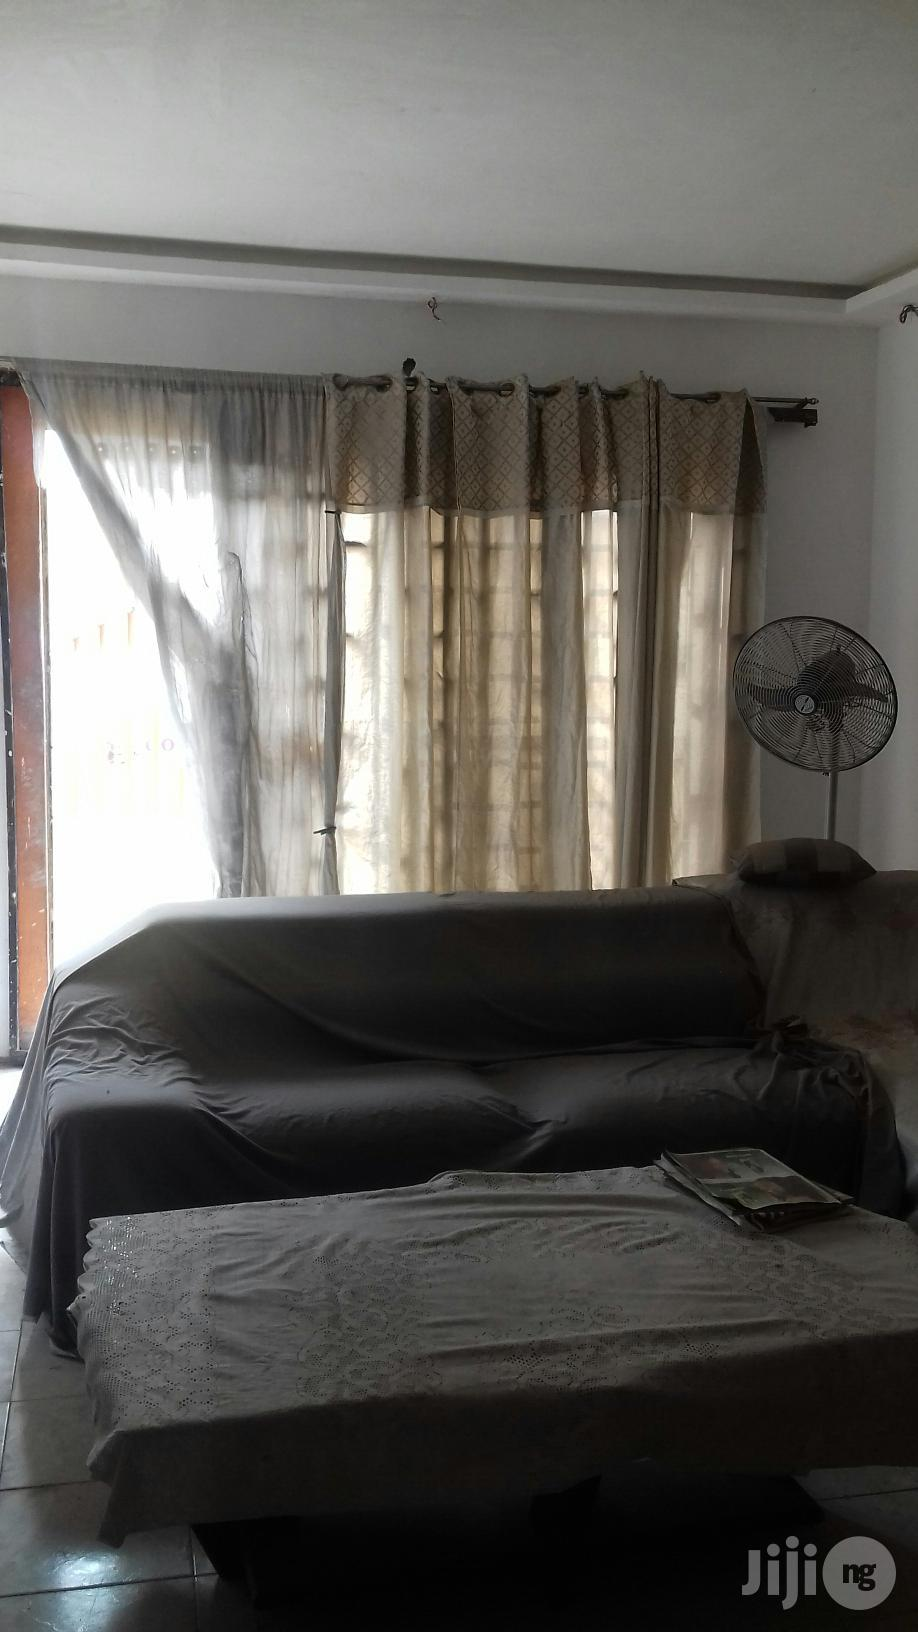 Newly Renovated Corner Piece 3 Bedroom Bungalow For Sale At Surulere | Houses & Apartments For Sale for sale in Surulere, Lagos State, Nigeria